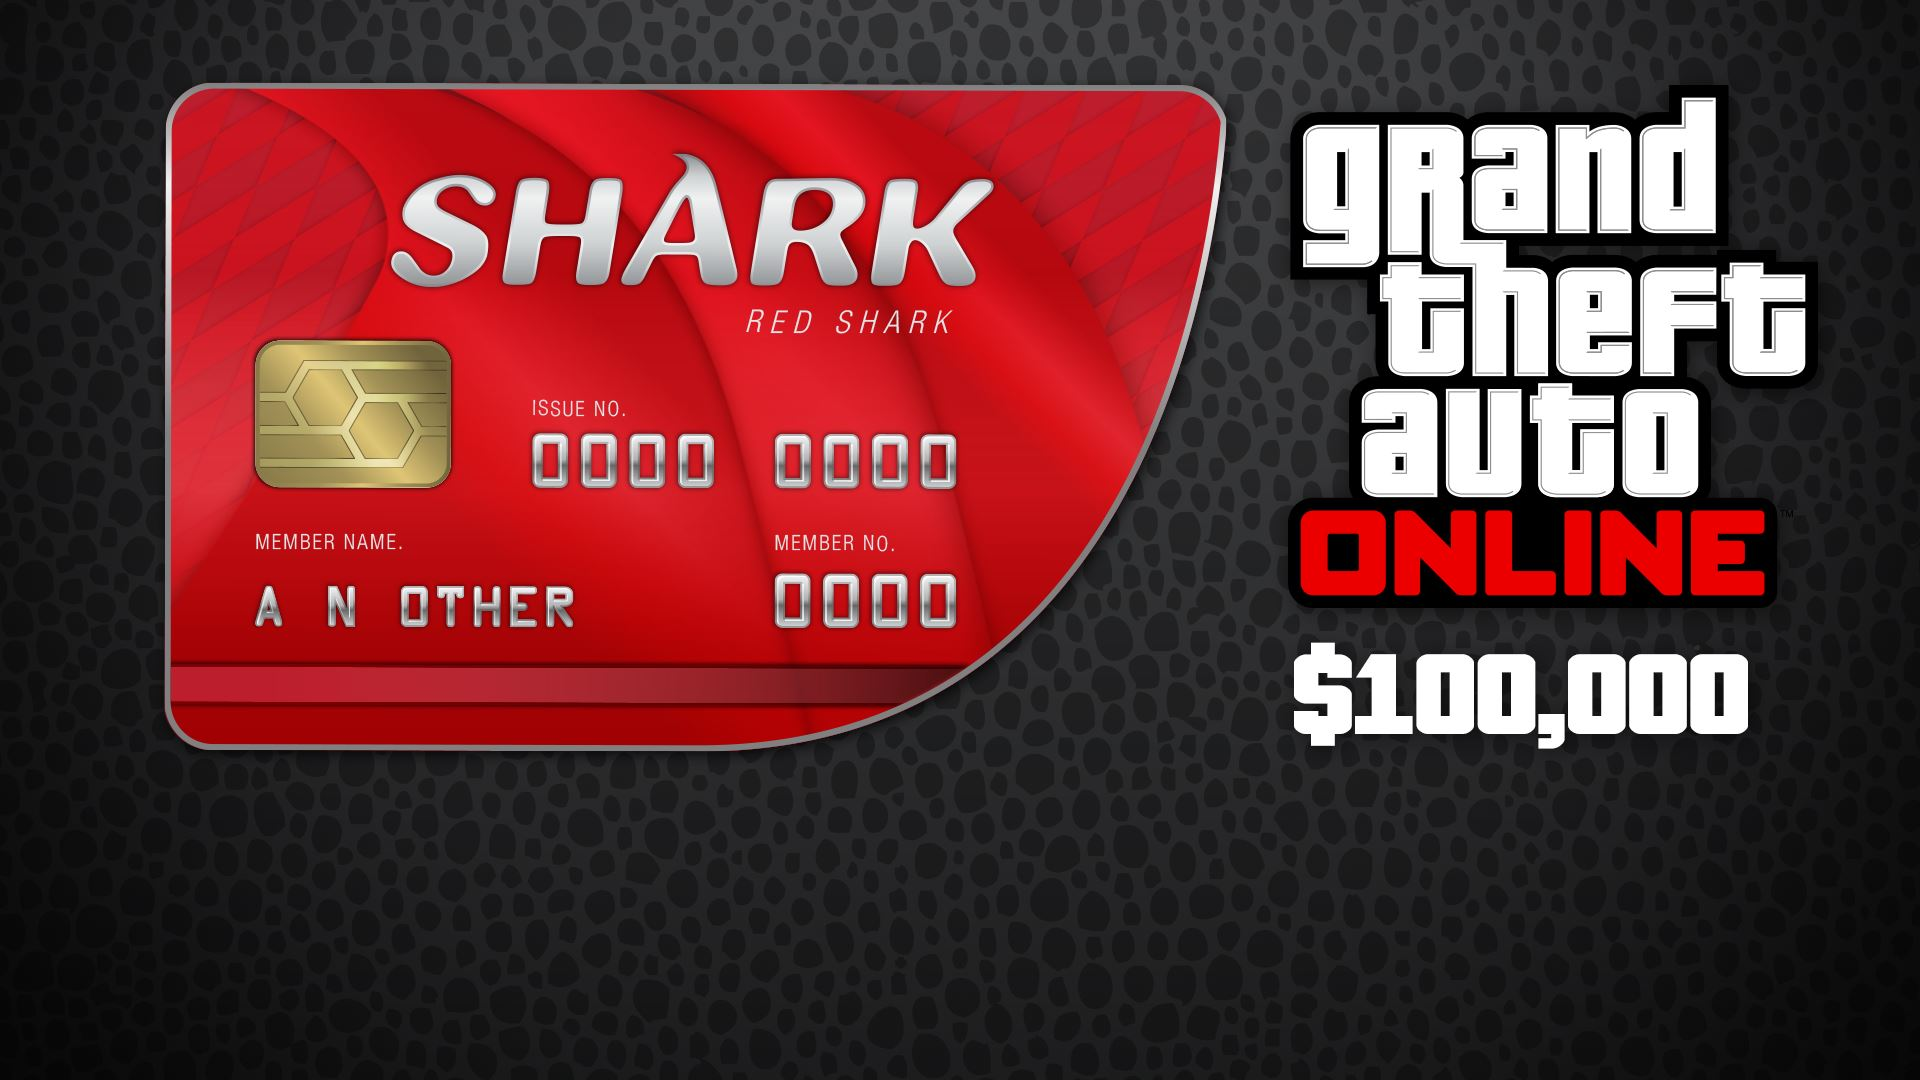 Grand Theft Auto Online: Red Shark Cash Card 100 000$